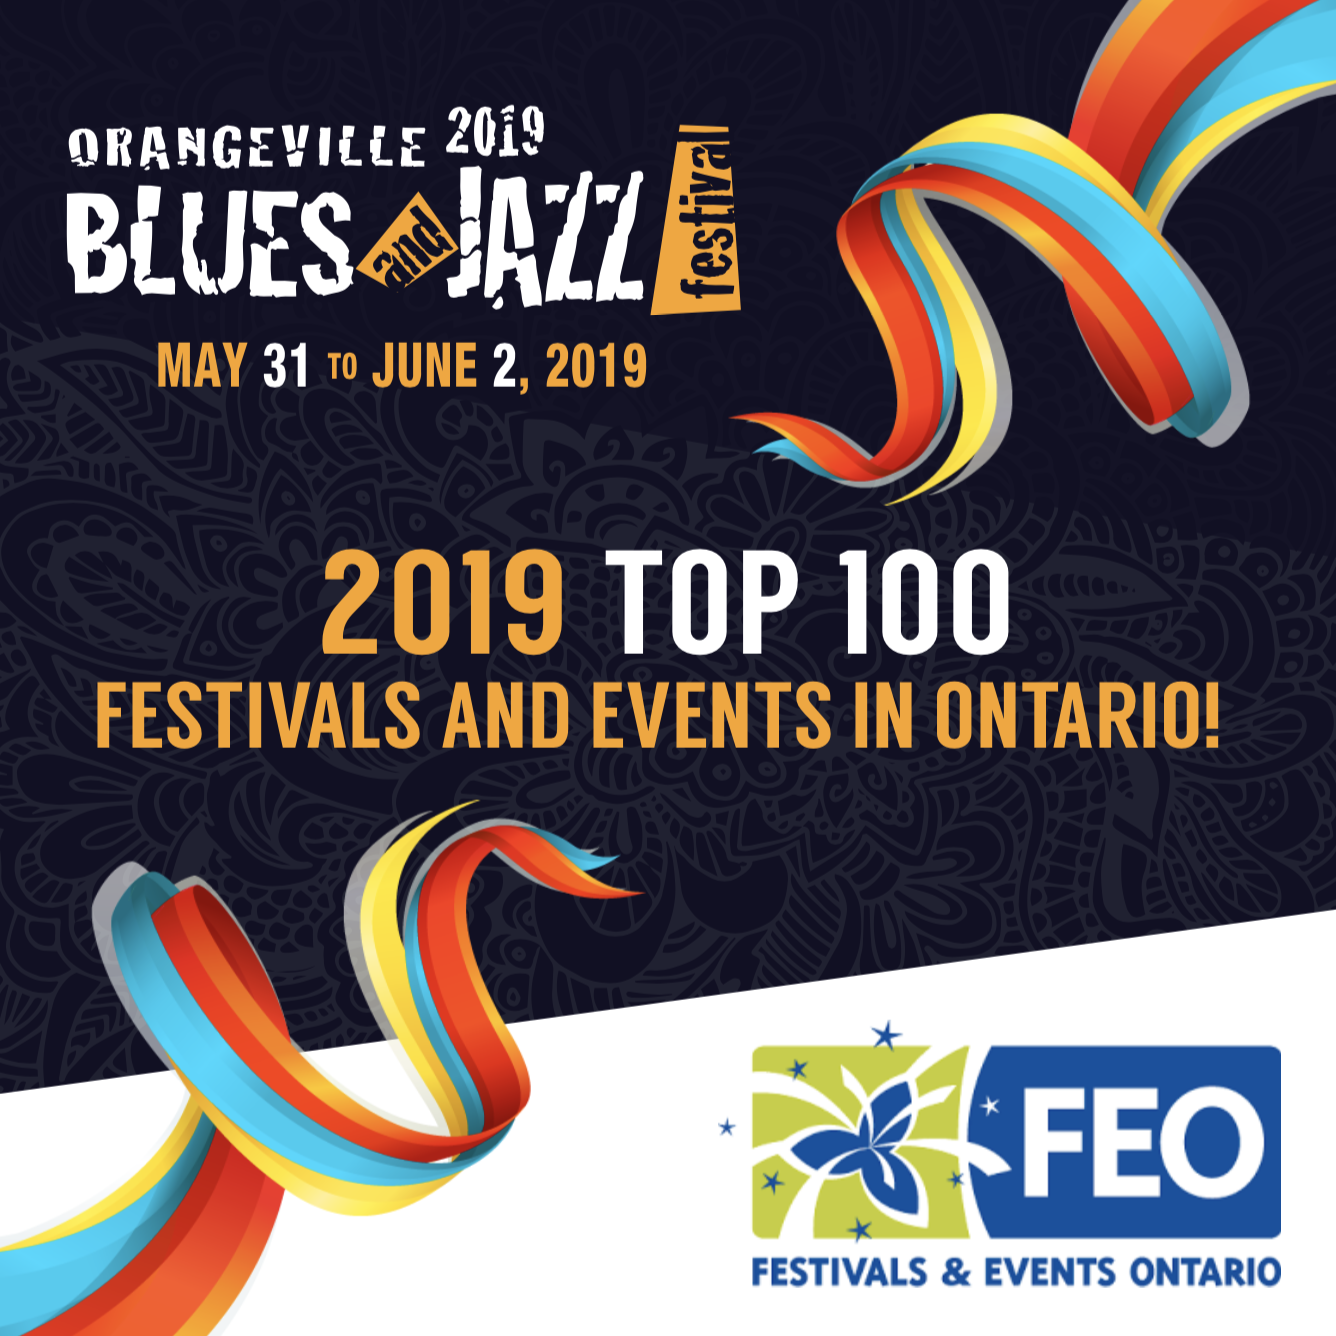 Orangeville Blues and Jazz Festival named one of Ontario's top 100 festivals and events for 2019